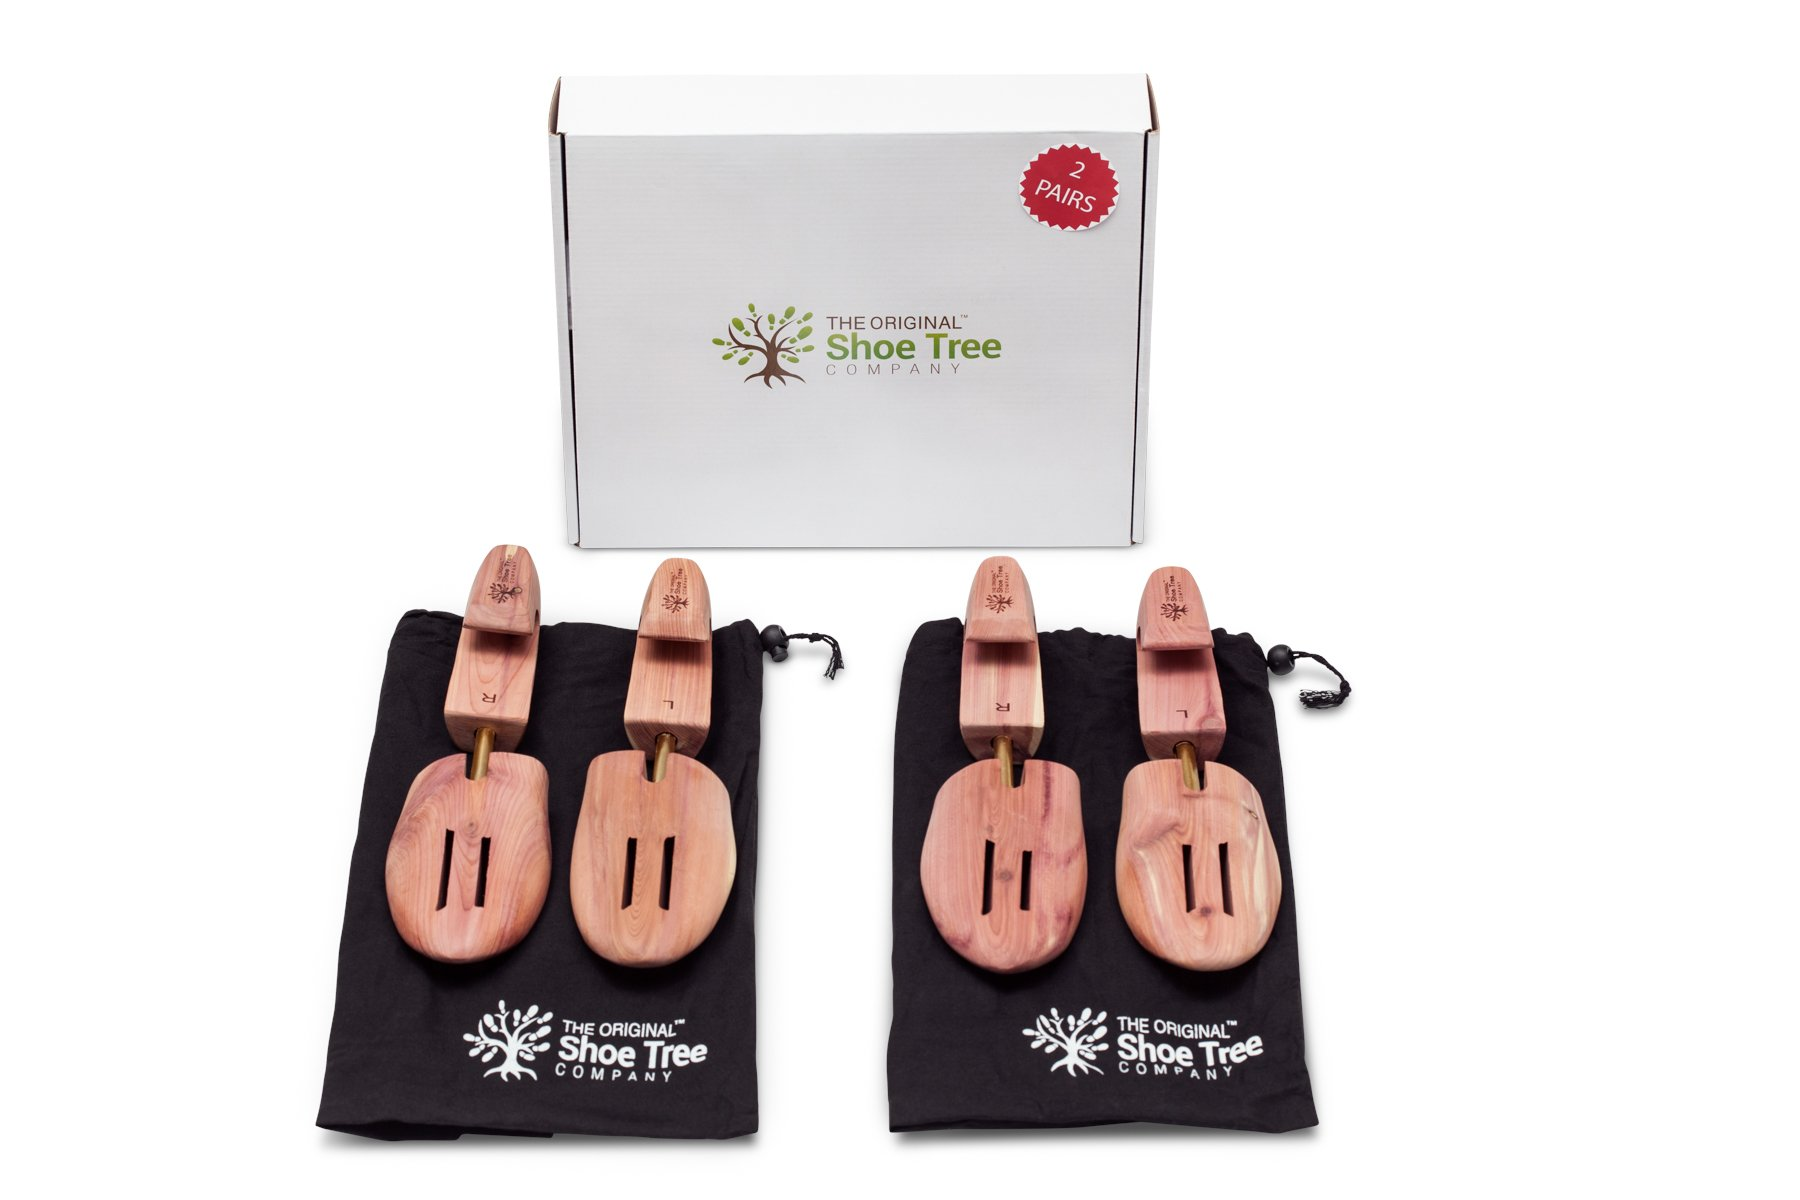 The Original Shoe Tree Company Fresh Cedar Shoe Tree 2-pack (for 2 pairs of shoes) Medium by The Original Shoe Tree Company (Image #2)